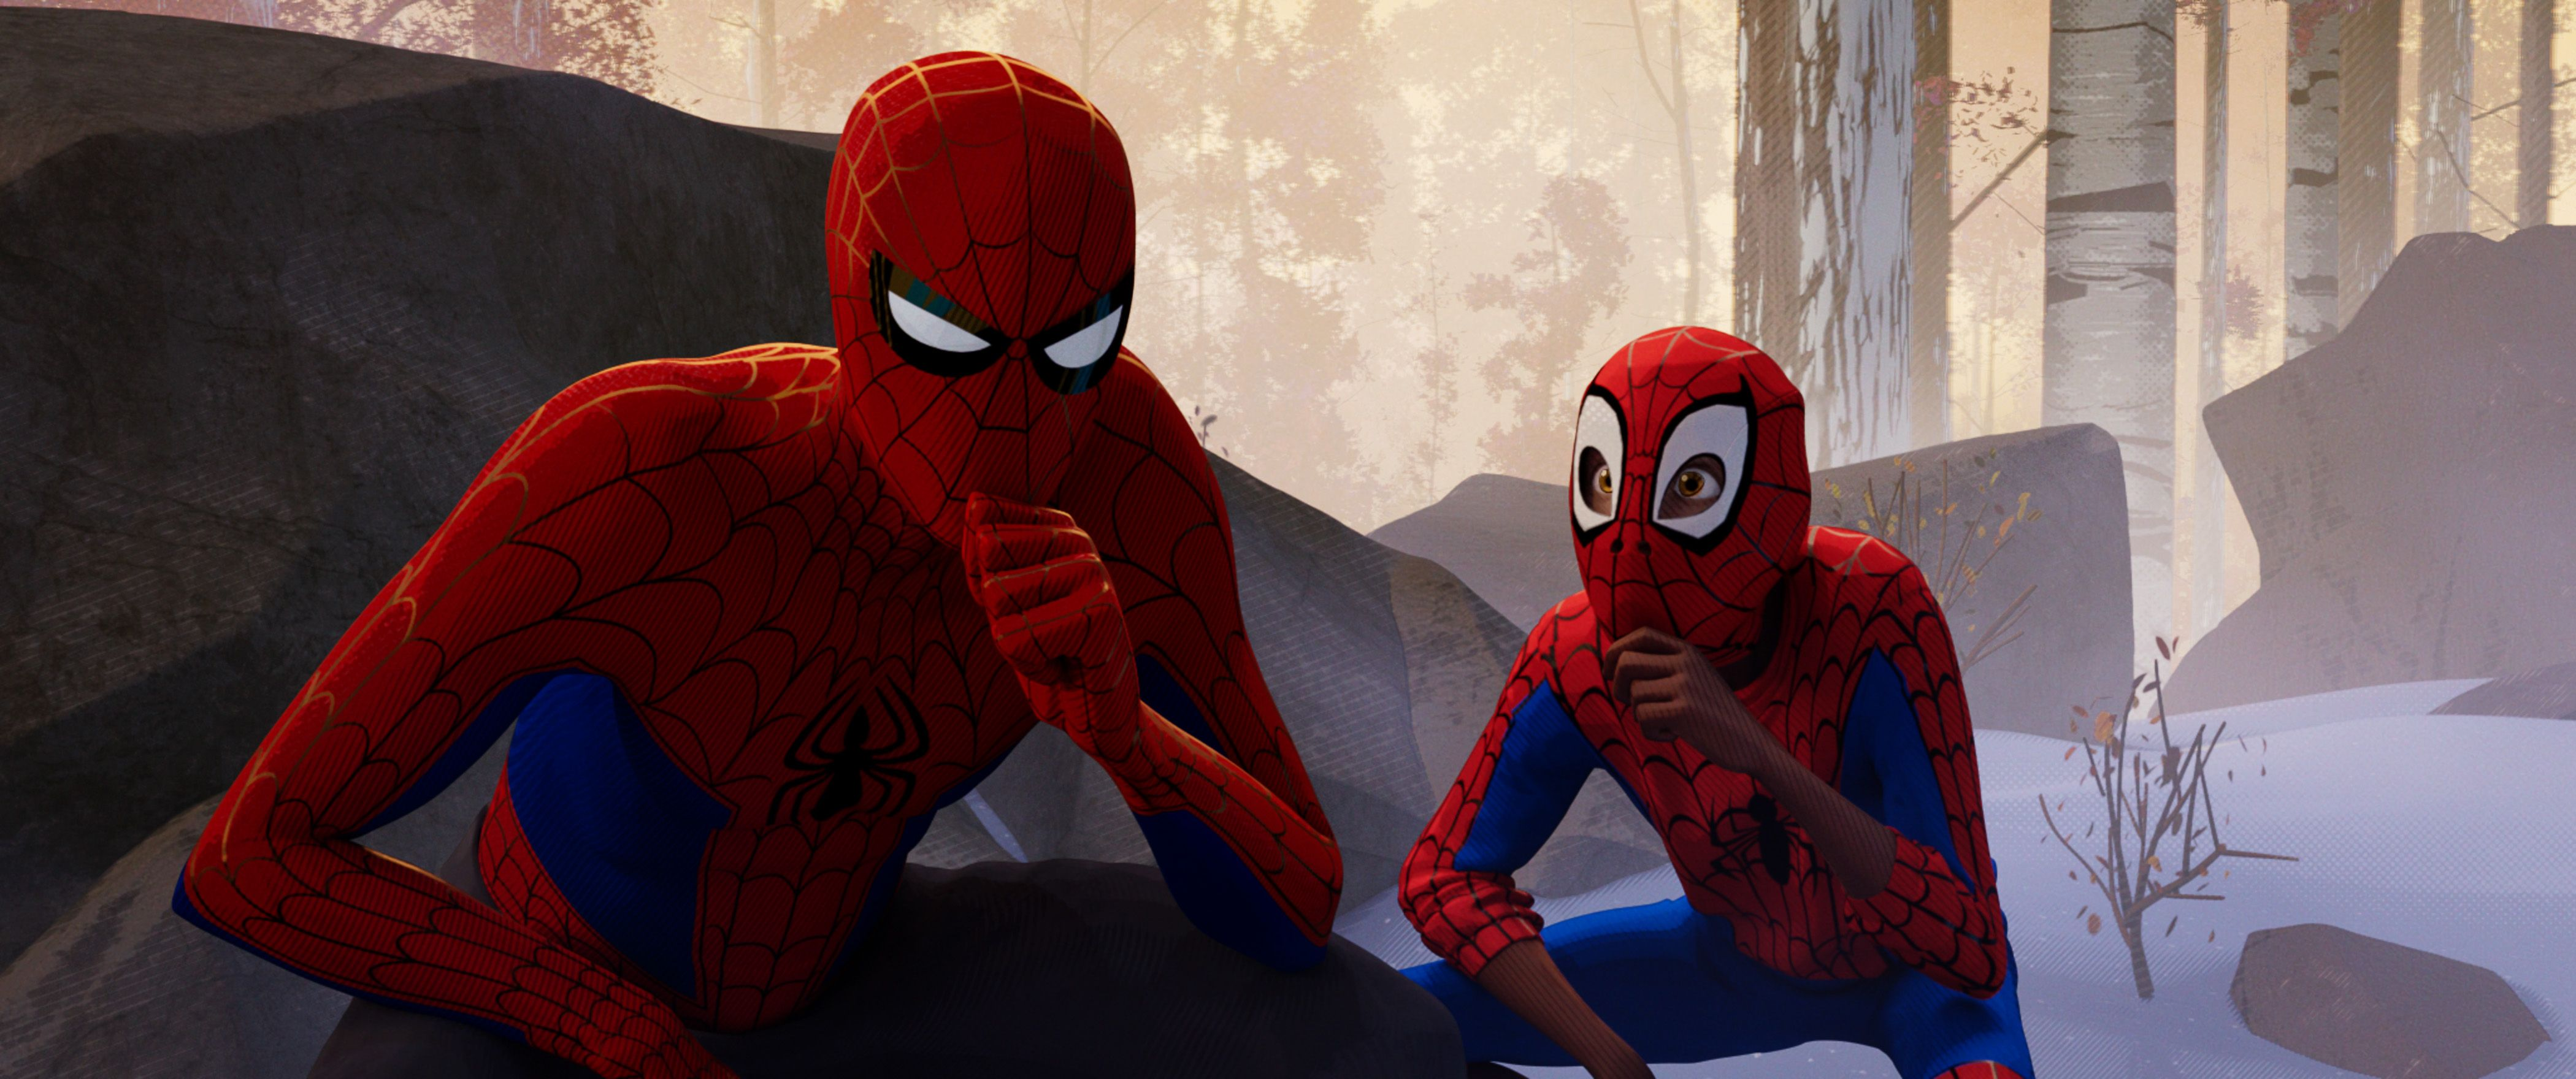 Spider Man Into The Spider Verse International Poster And Promo